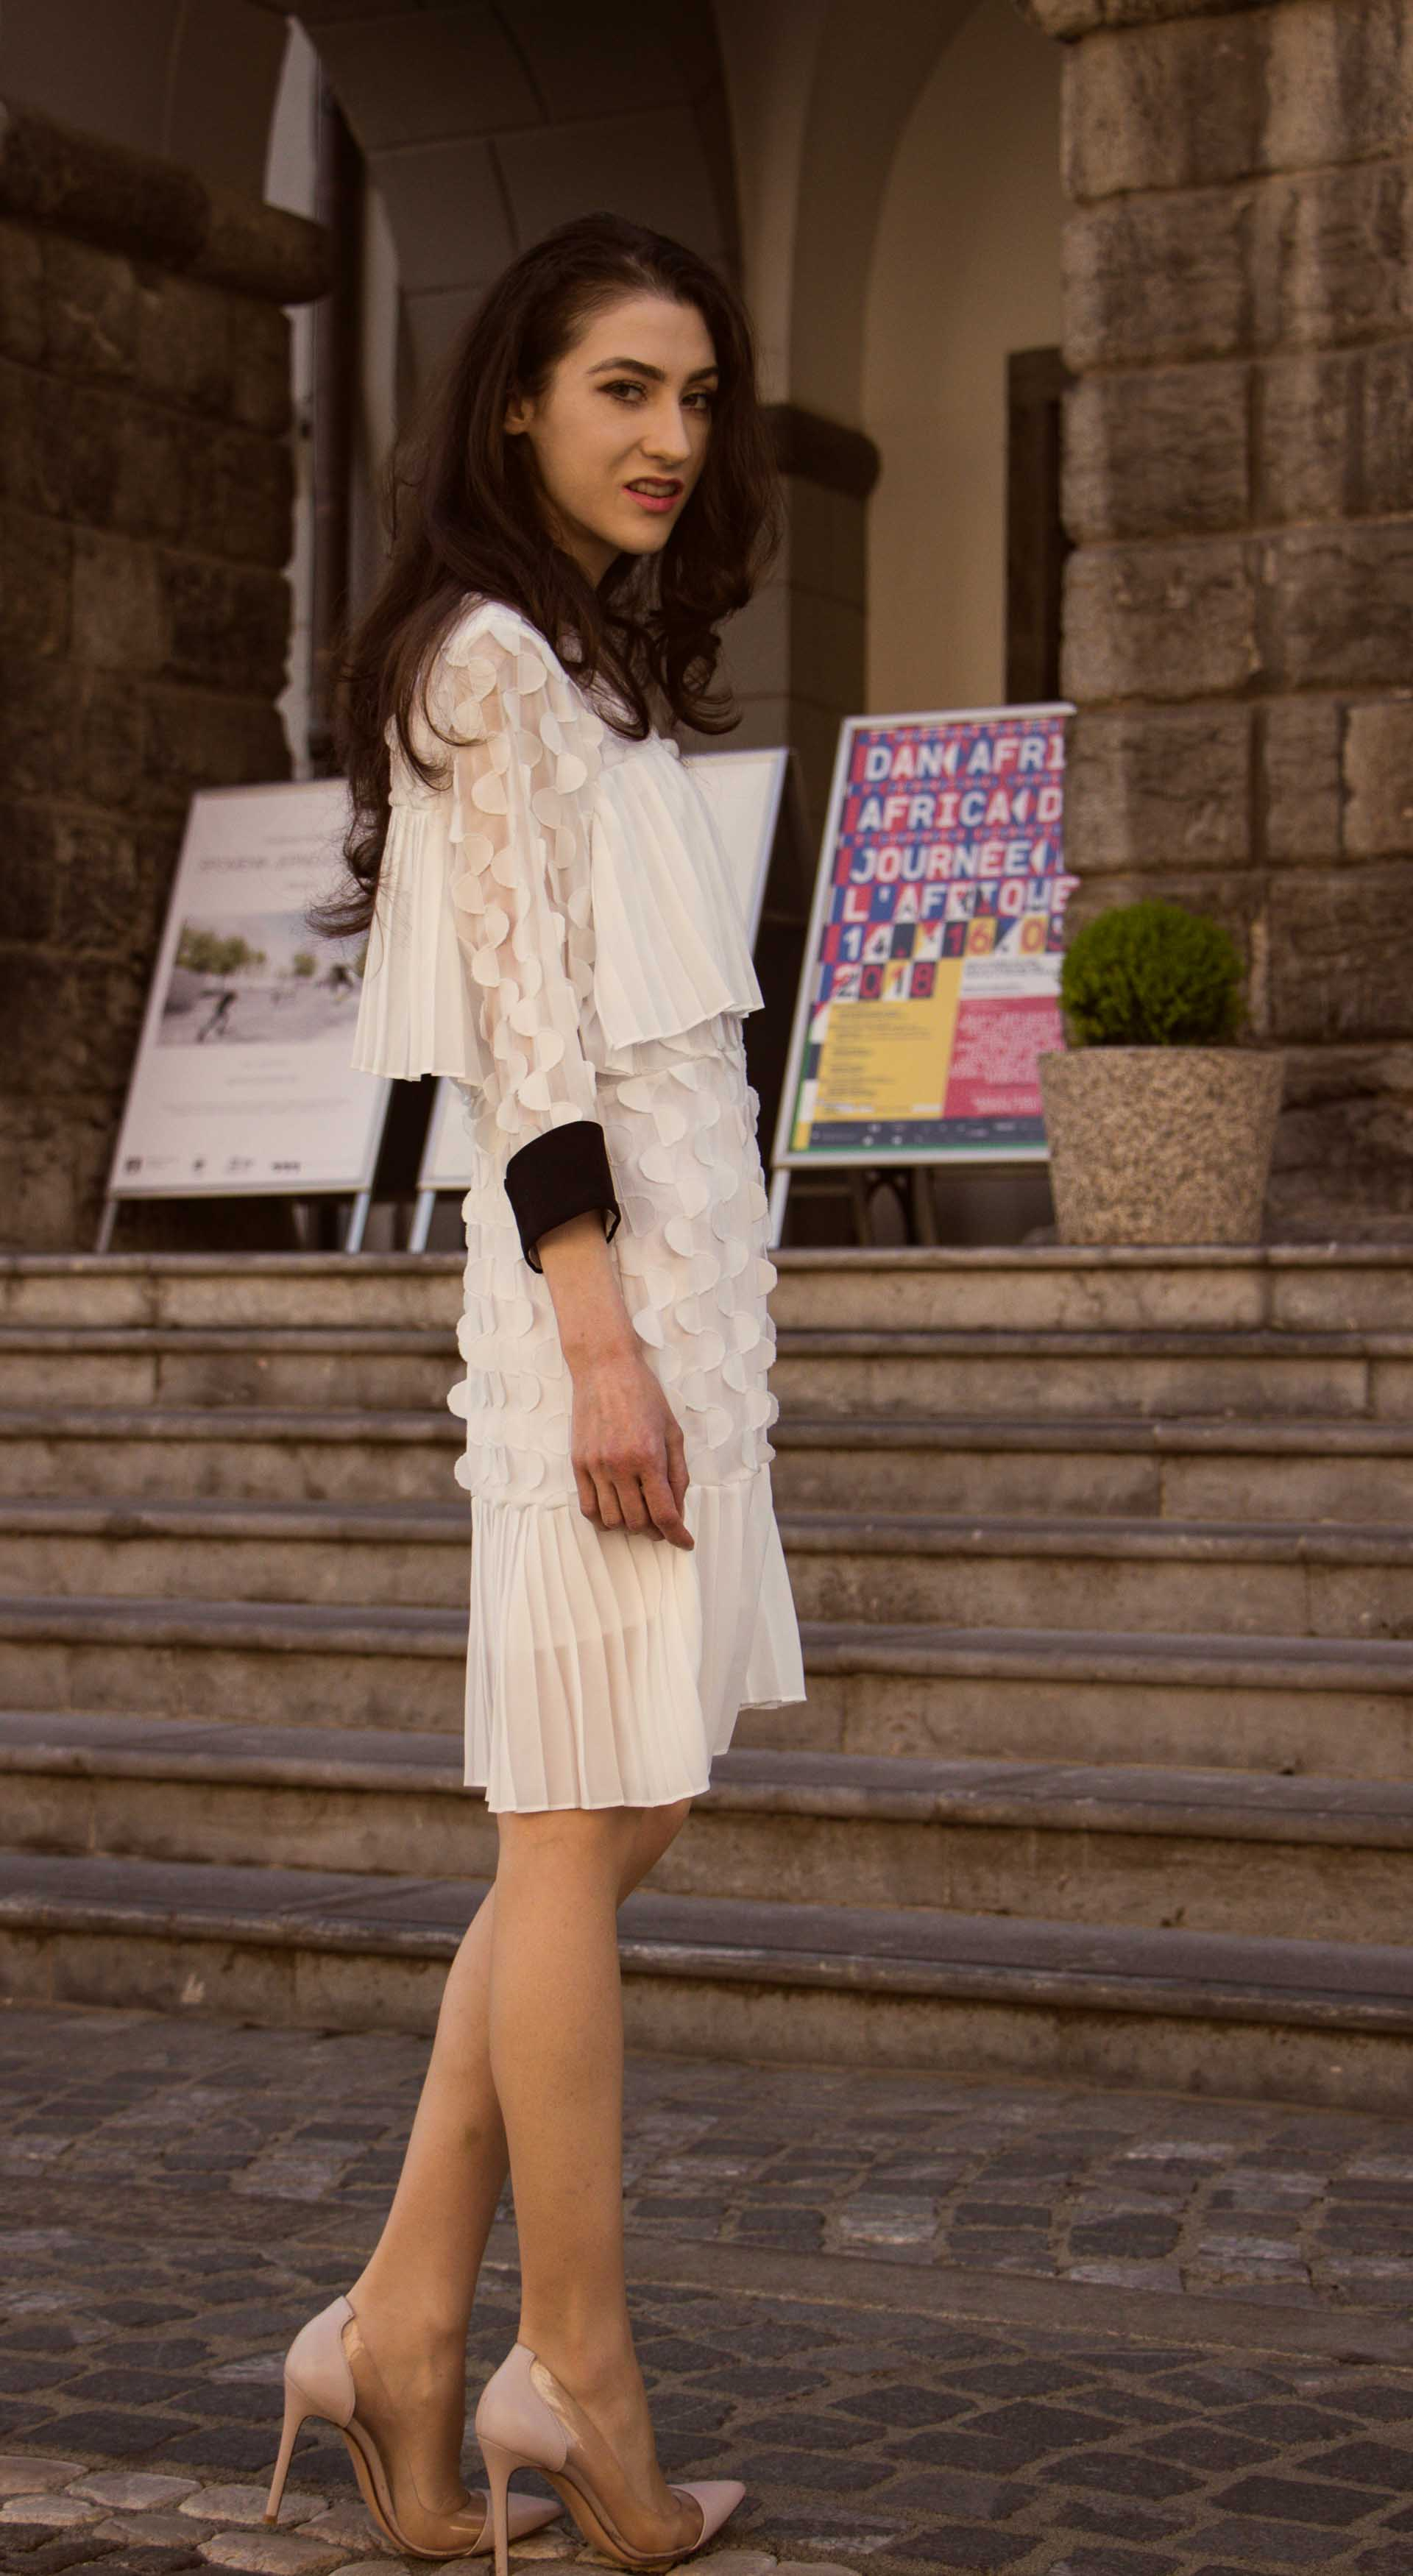 Veronika Lipar Fashion Blogger of Brunette from Wall Street dressed in Storets little white dress, Gianvito Rossi pumps for Wednesday wedding at city hall in Ljubljana